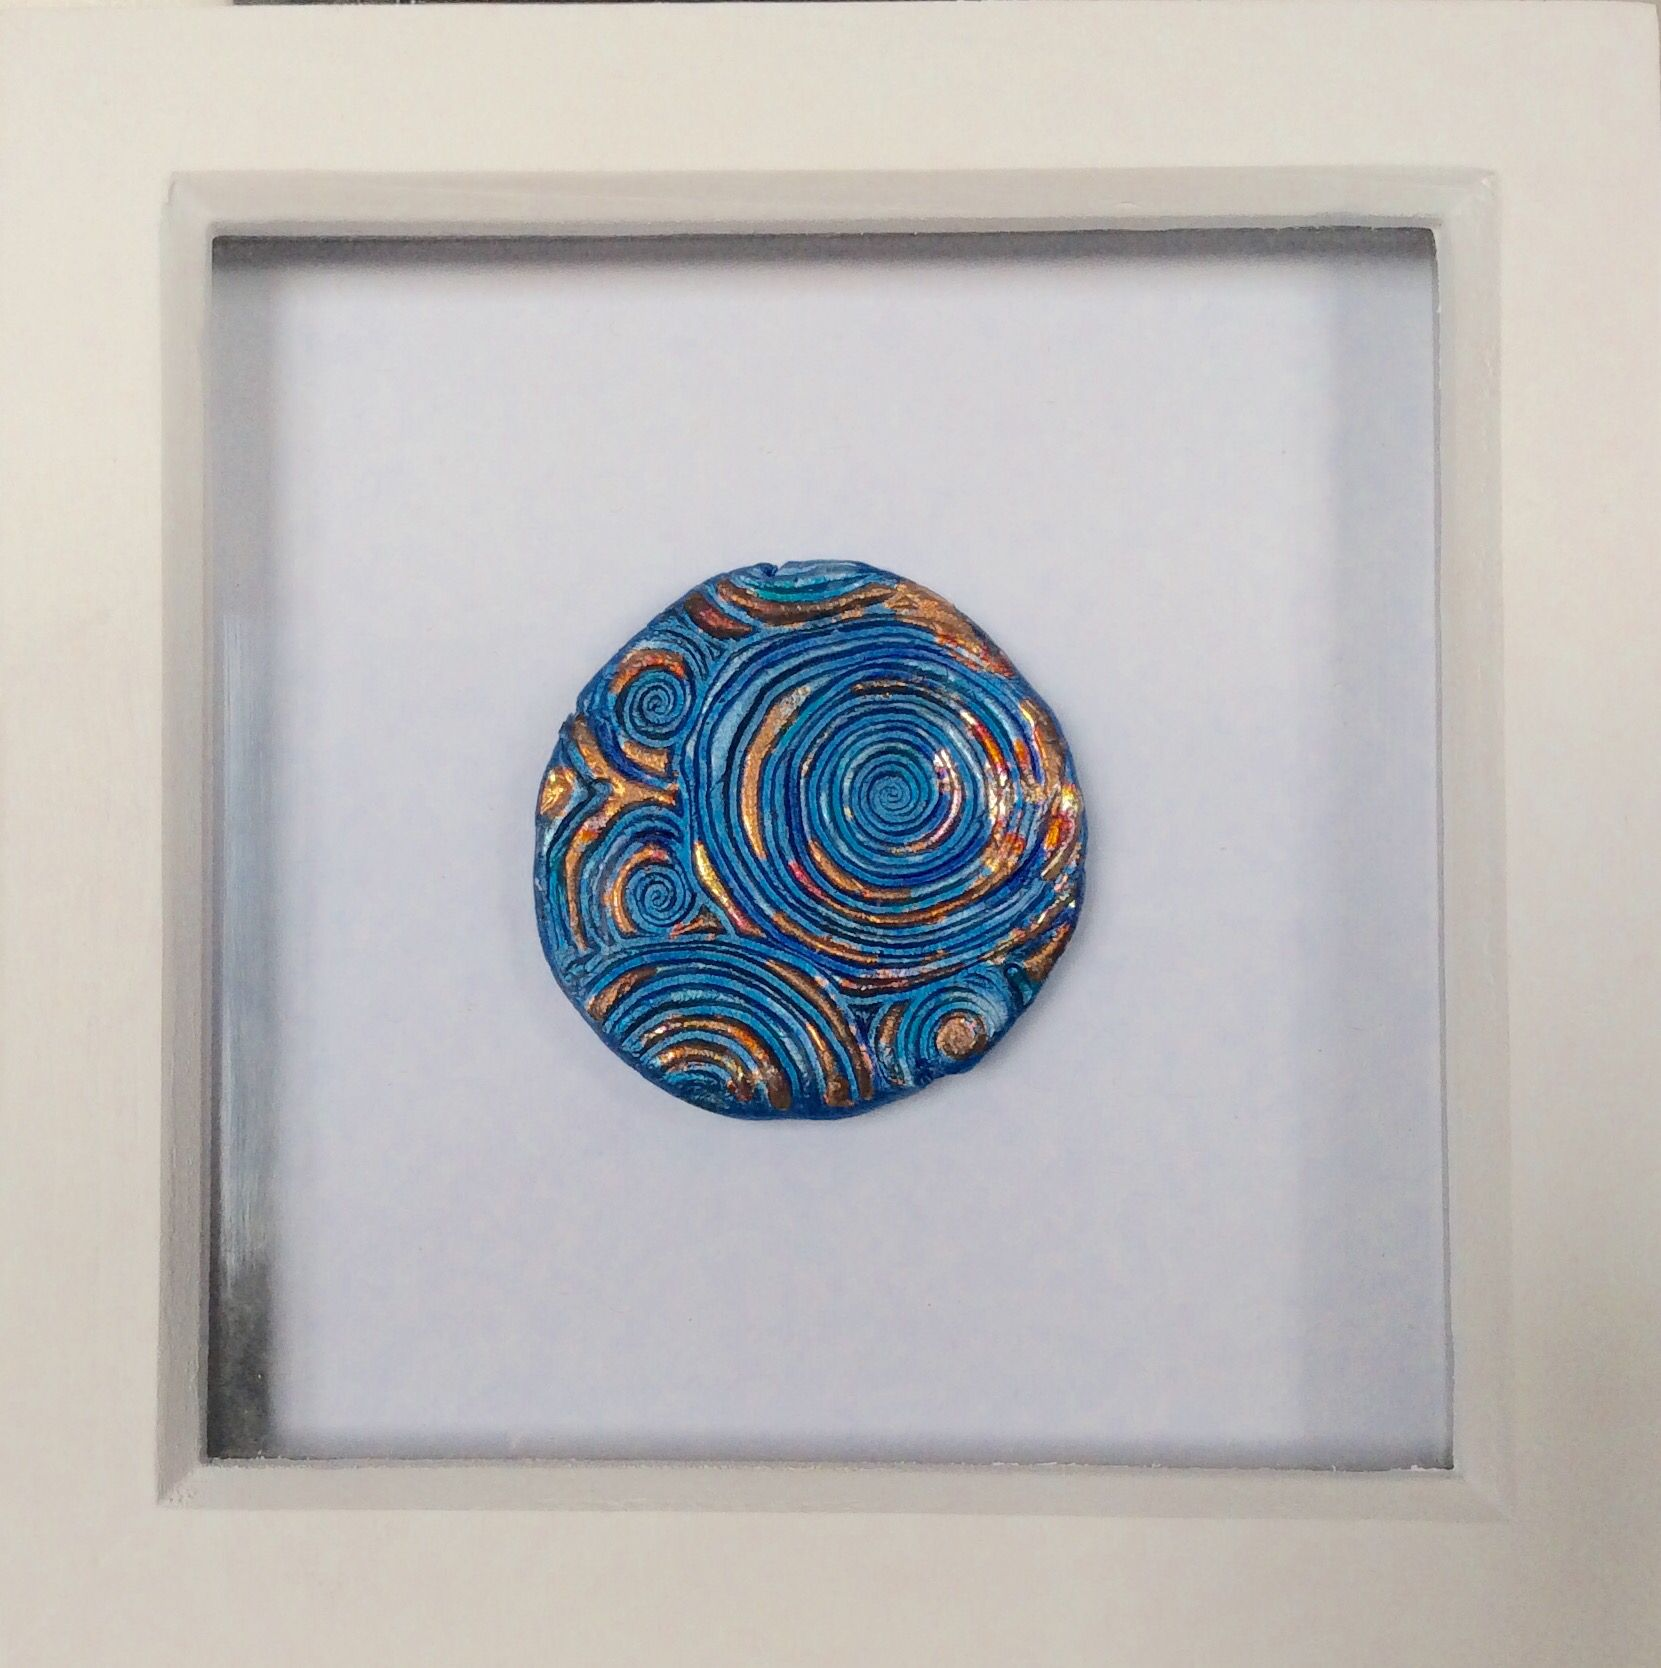 Pool\' by Sarah Seven. Clay and guild in a white boxed frame ...